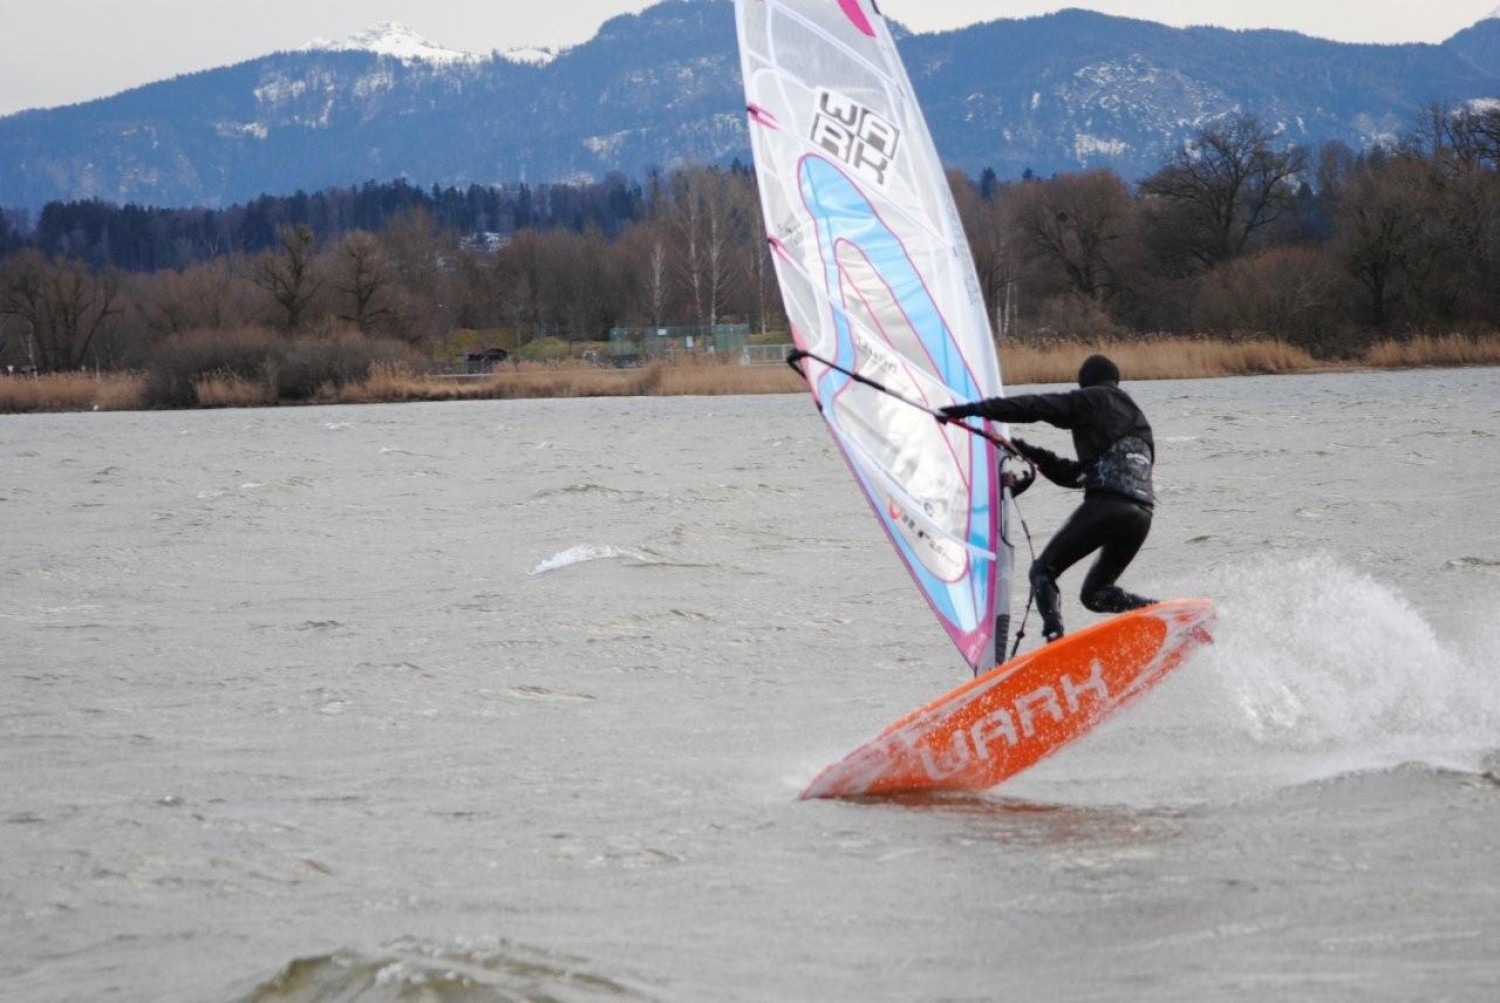 daily dose of windsurfing